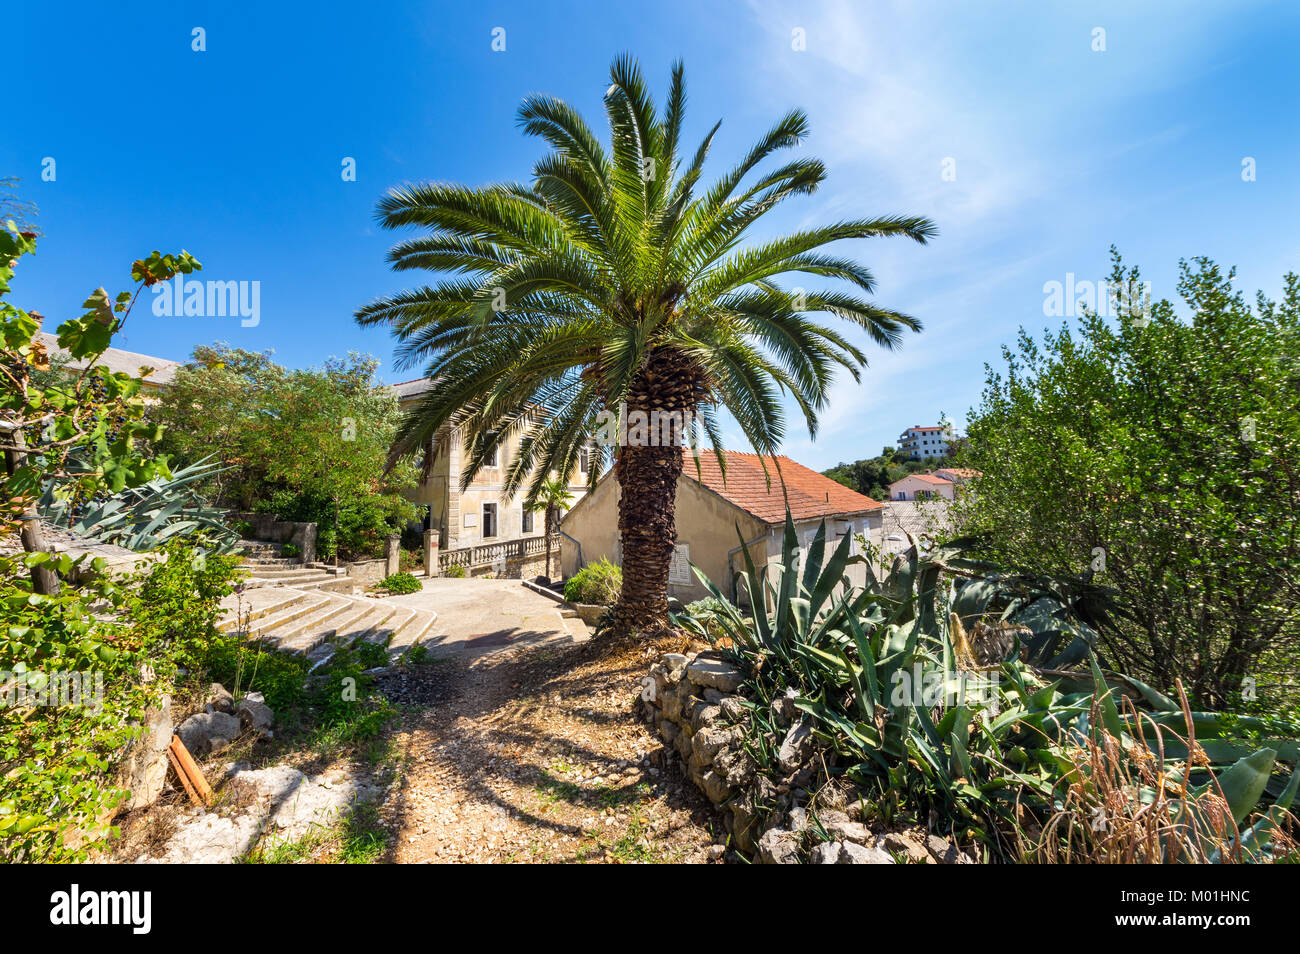 Summer on Island Iz, Croatia - Stock Image